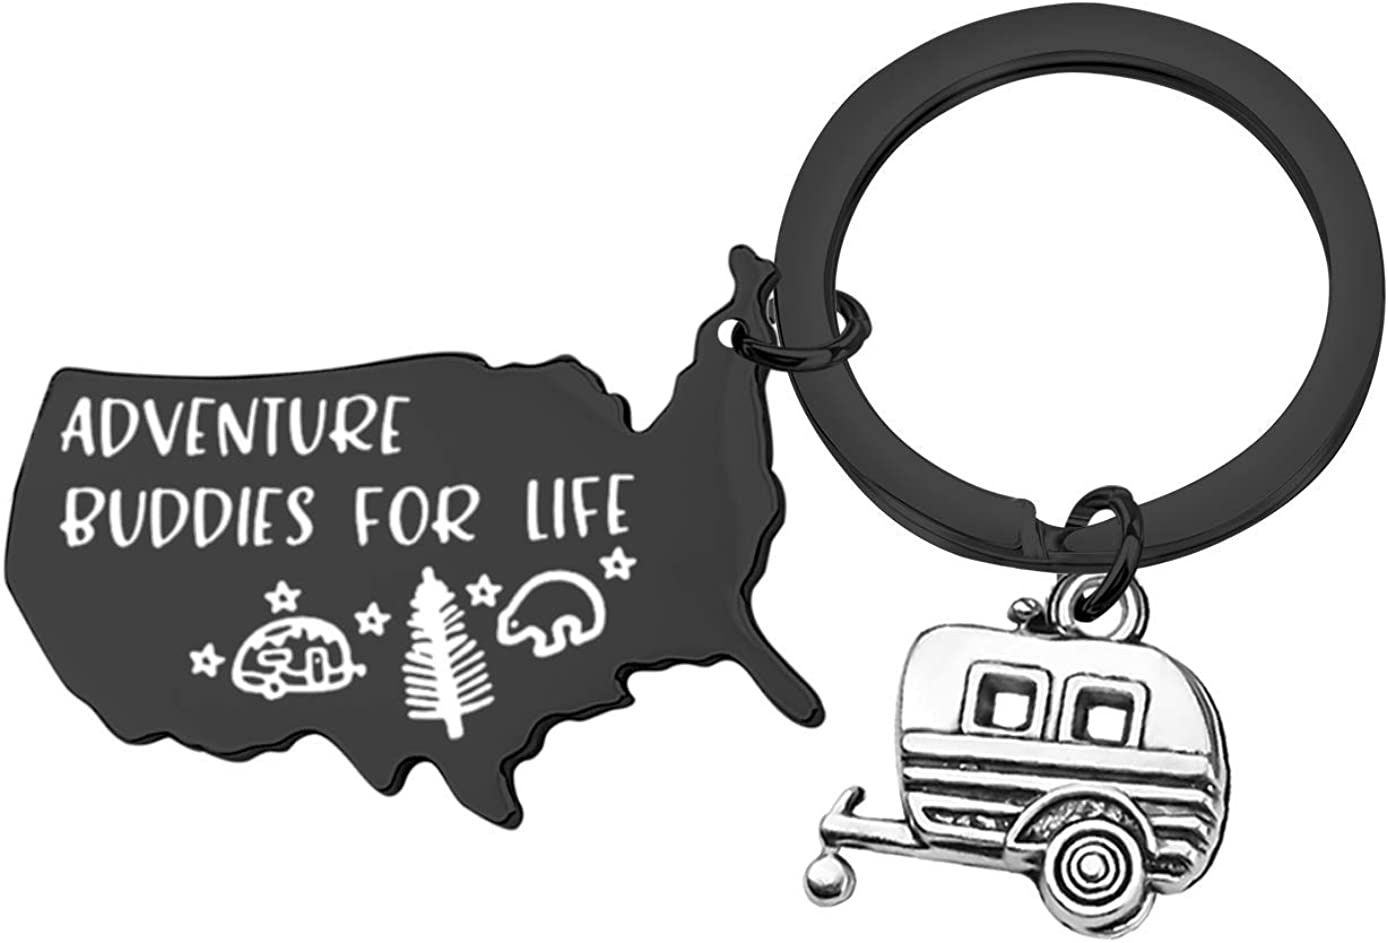 MAOFAED Camping Gift Camping Keychain RV Camper Gift Adventure Gift Adventure Buddies Keychain Outdoor Keychain Traveller Gift